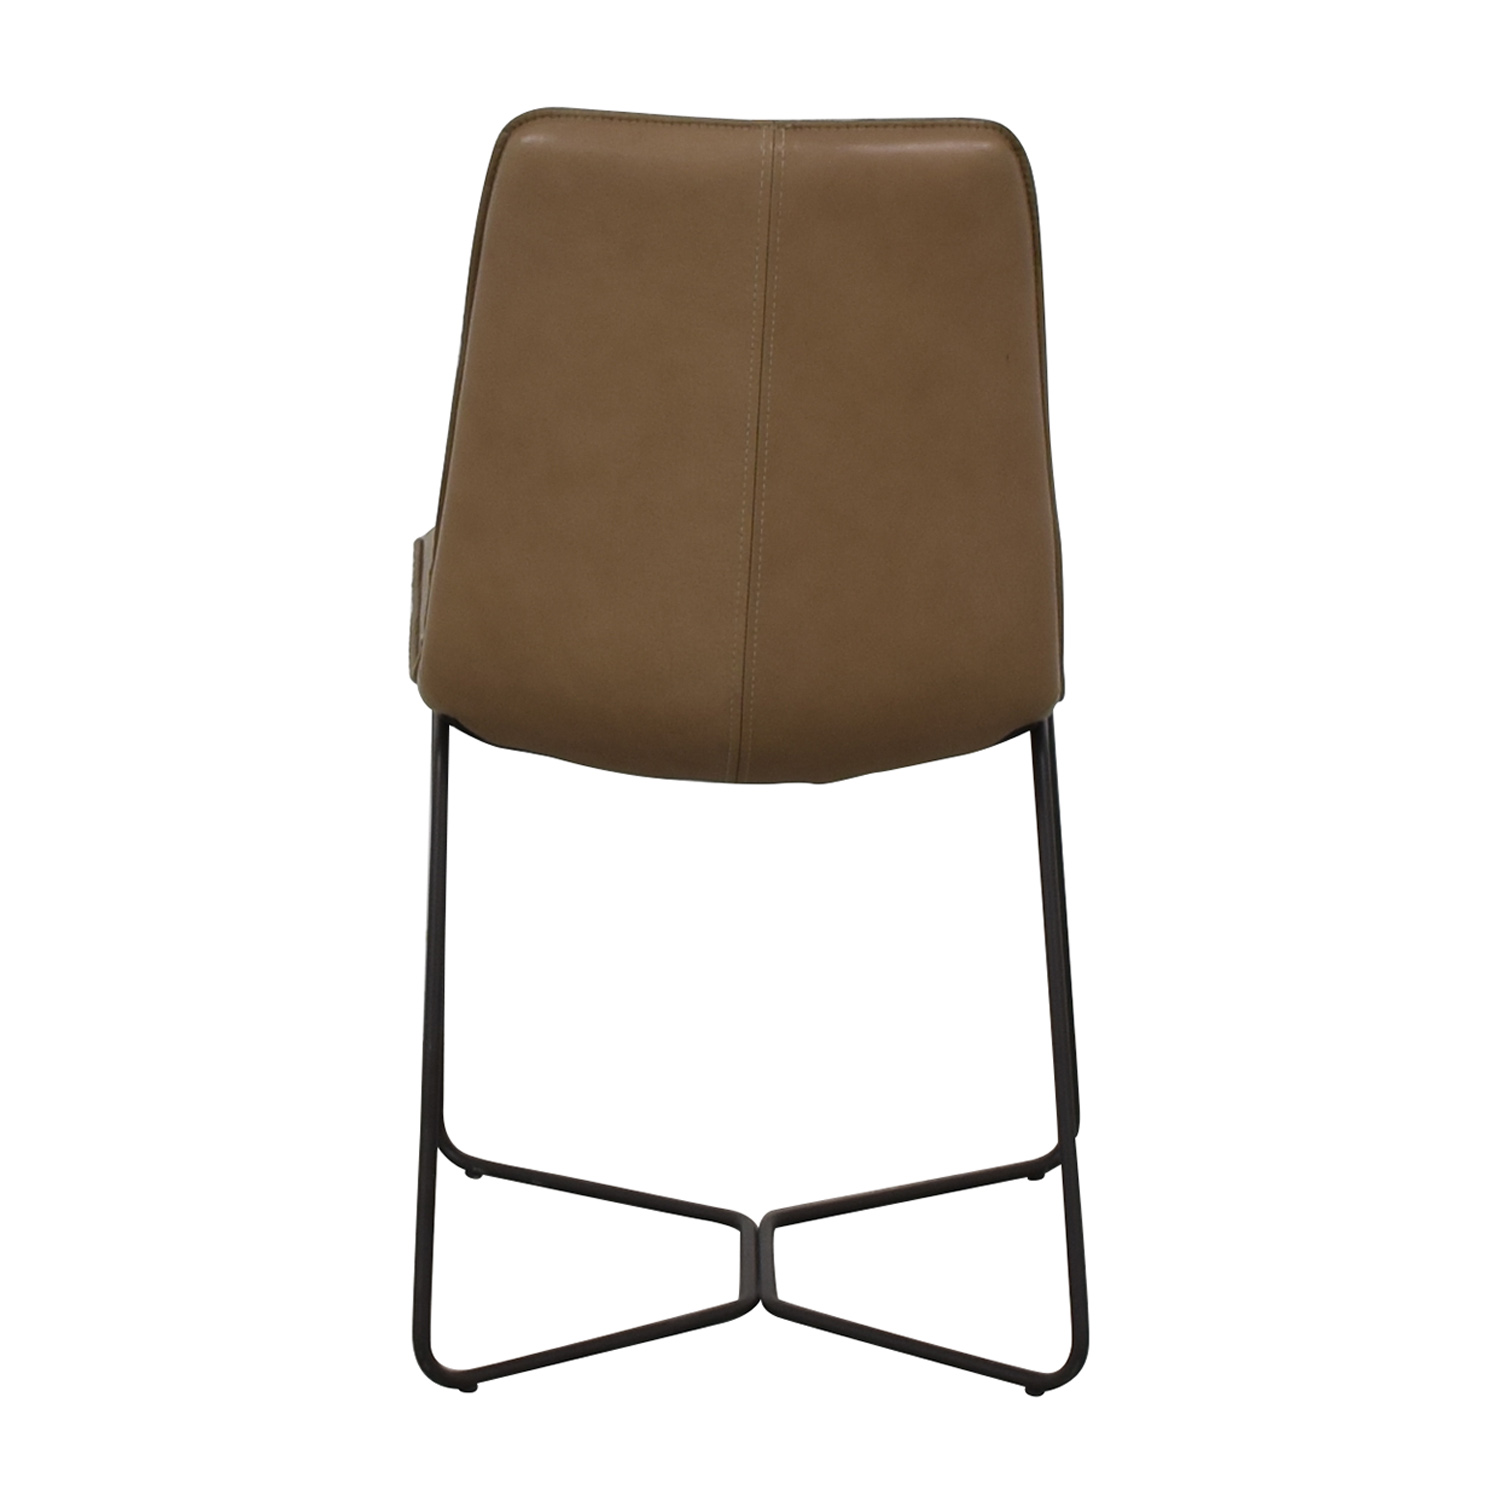 73 Off West Elm West Elm Leather Slope Dining Chair